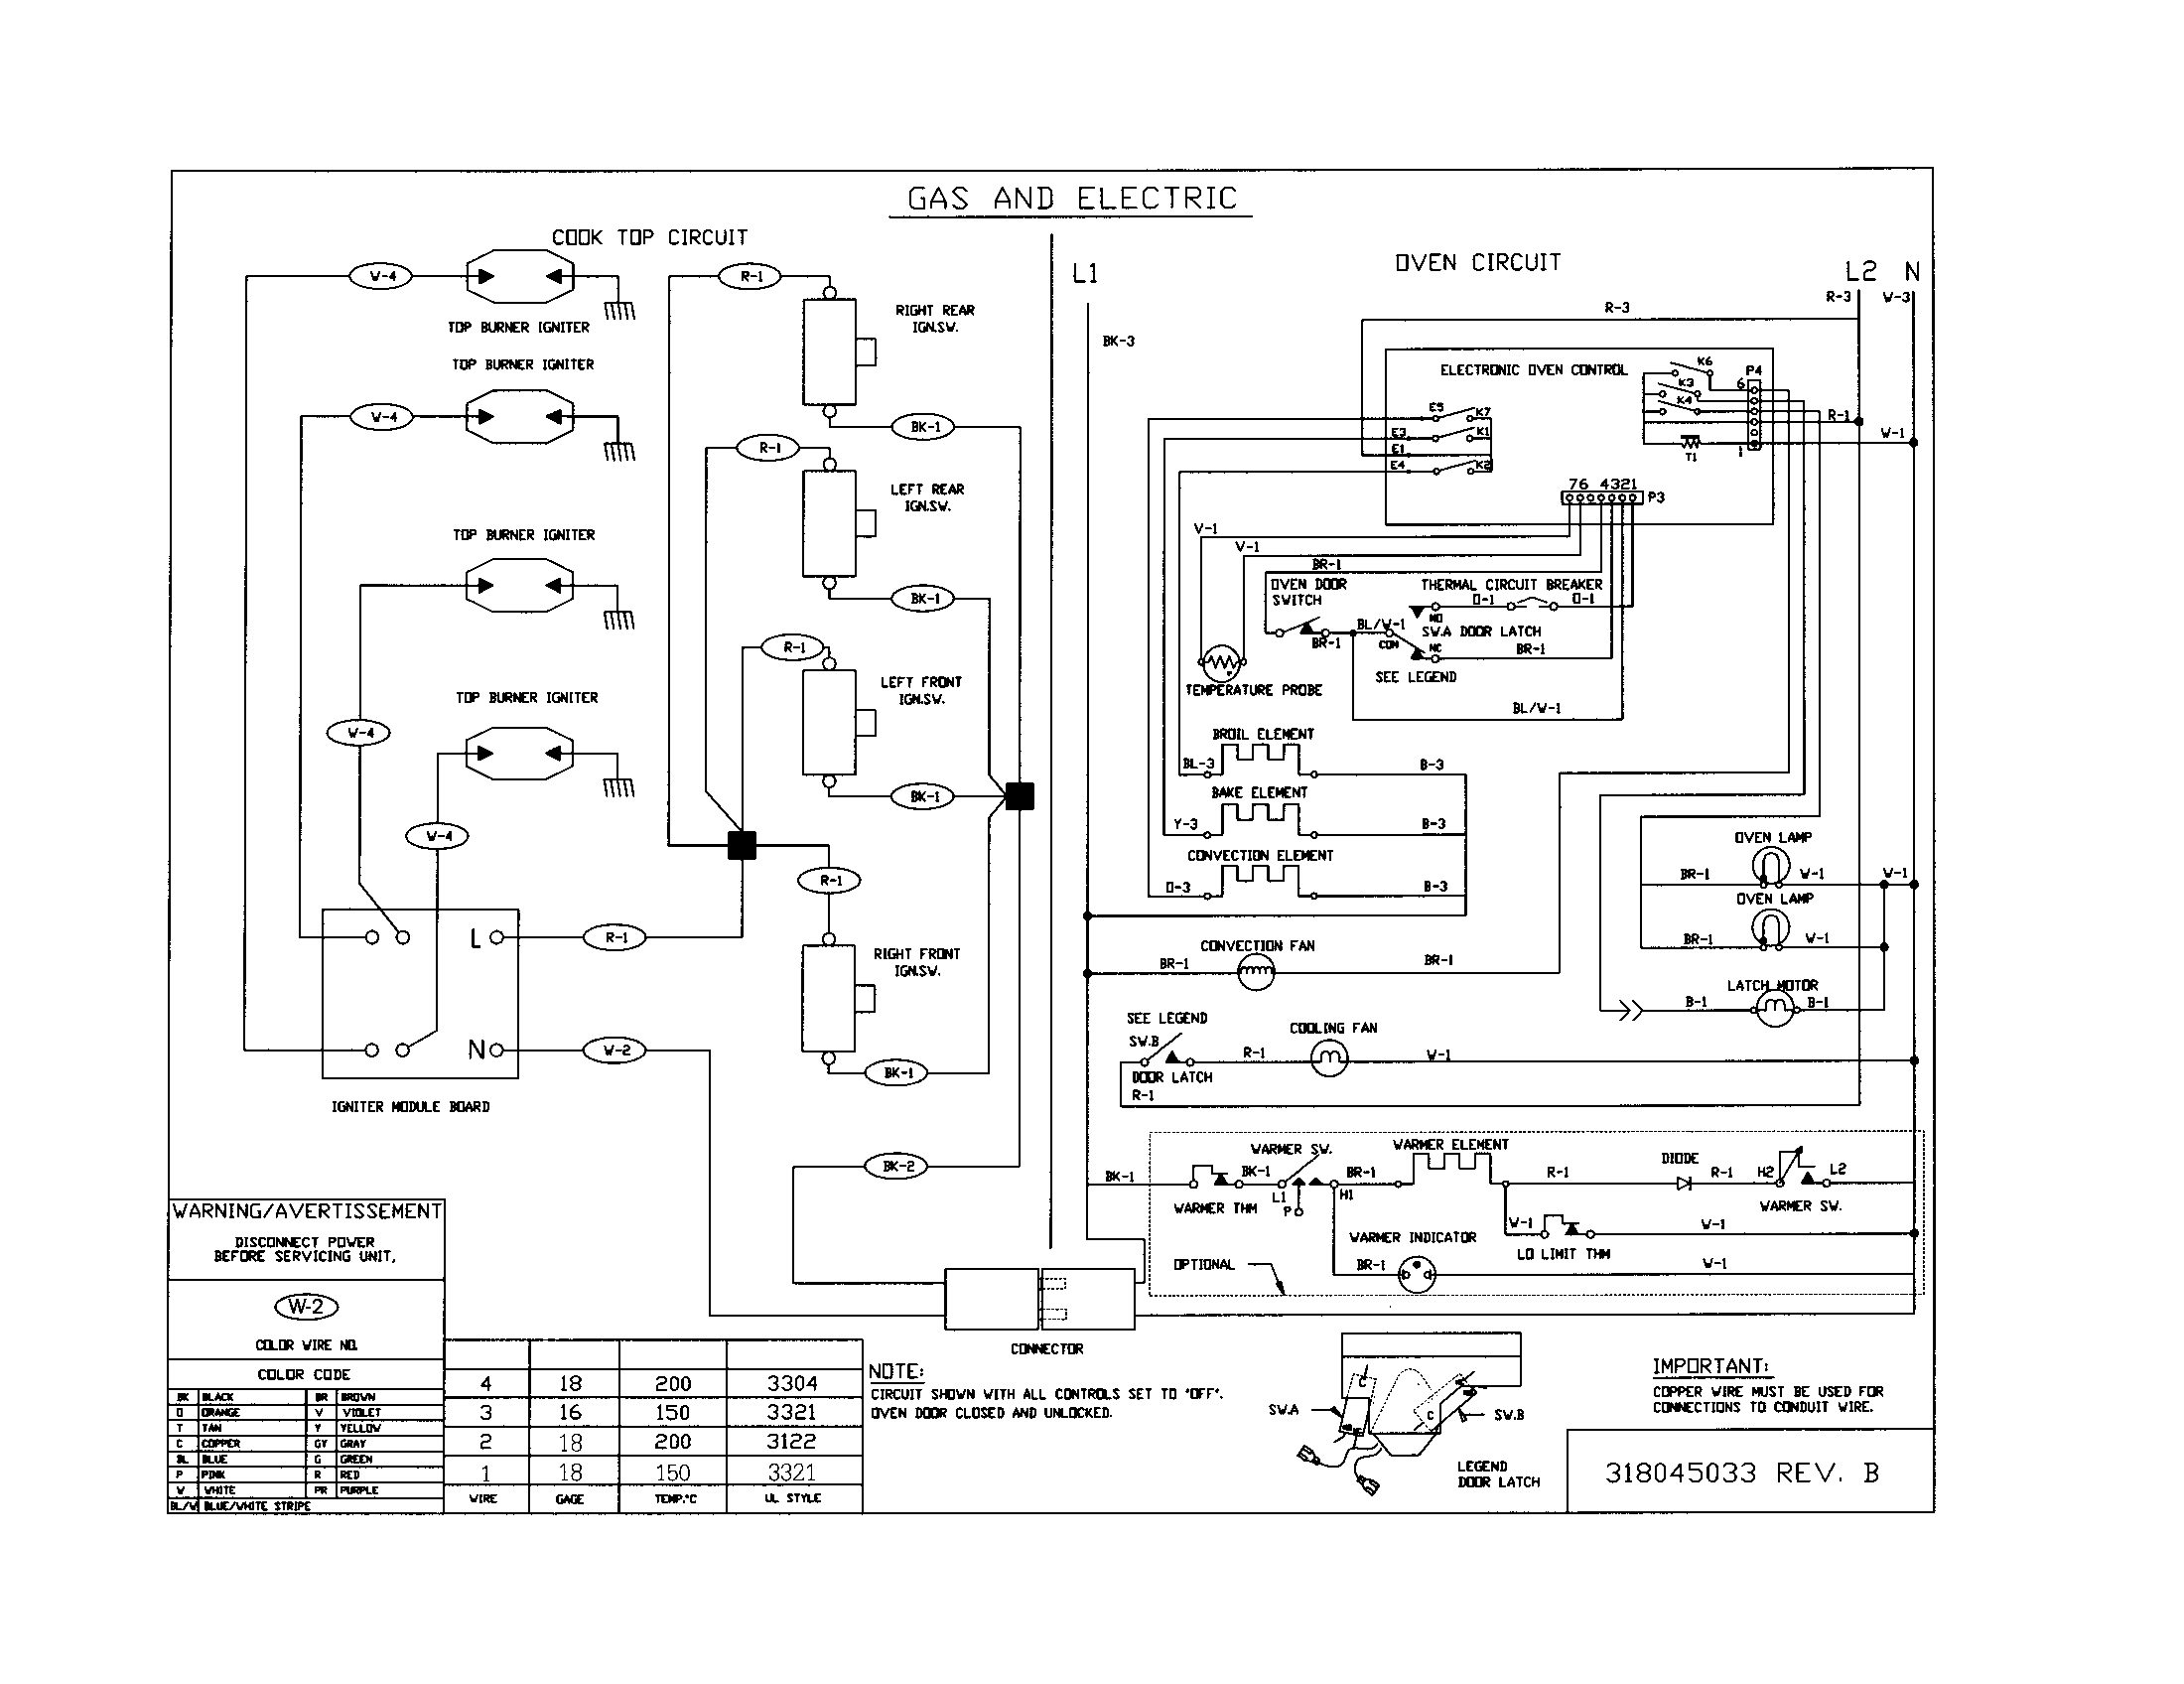 kenmore side by side refrigerator wiring diagram Download-Kenmore Refrigerator Wiring Diagram Fresh Kenmore Elite Refrigerator Wiring Diagram Webtor 7-e